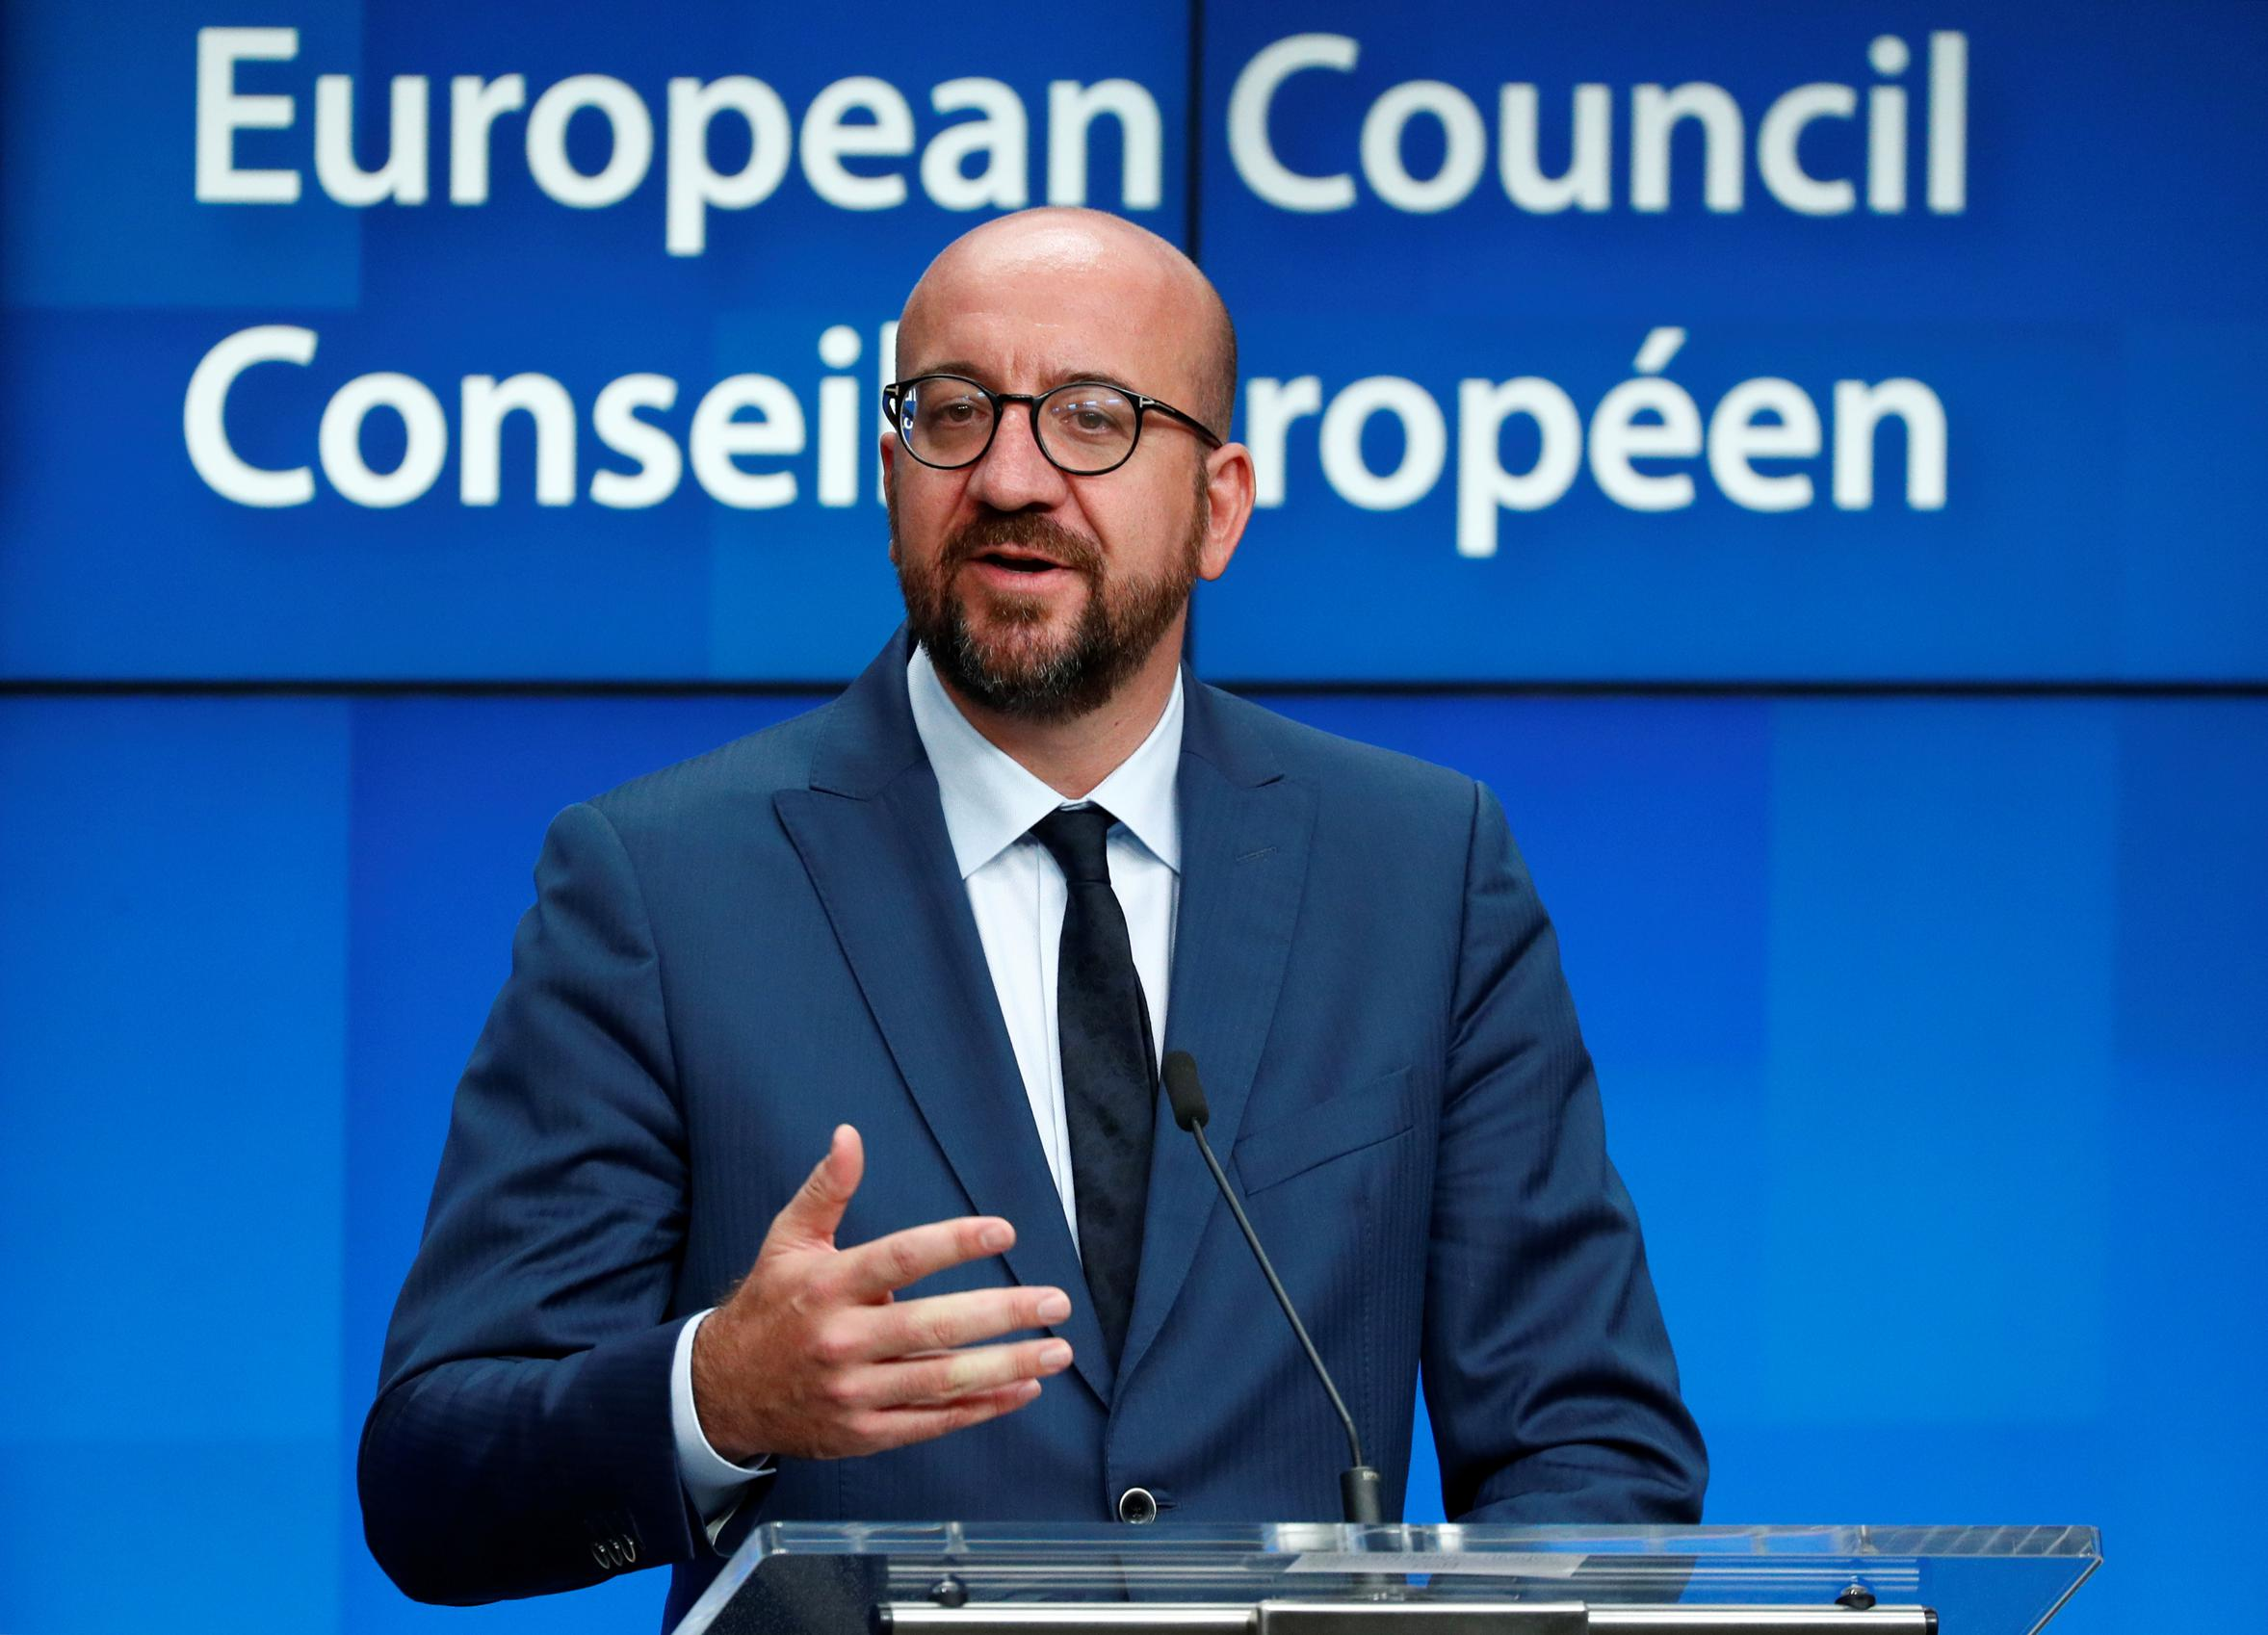 EU: Conclusions of the President of the E.C. following the video conference of the European Council